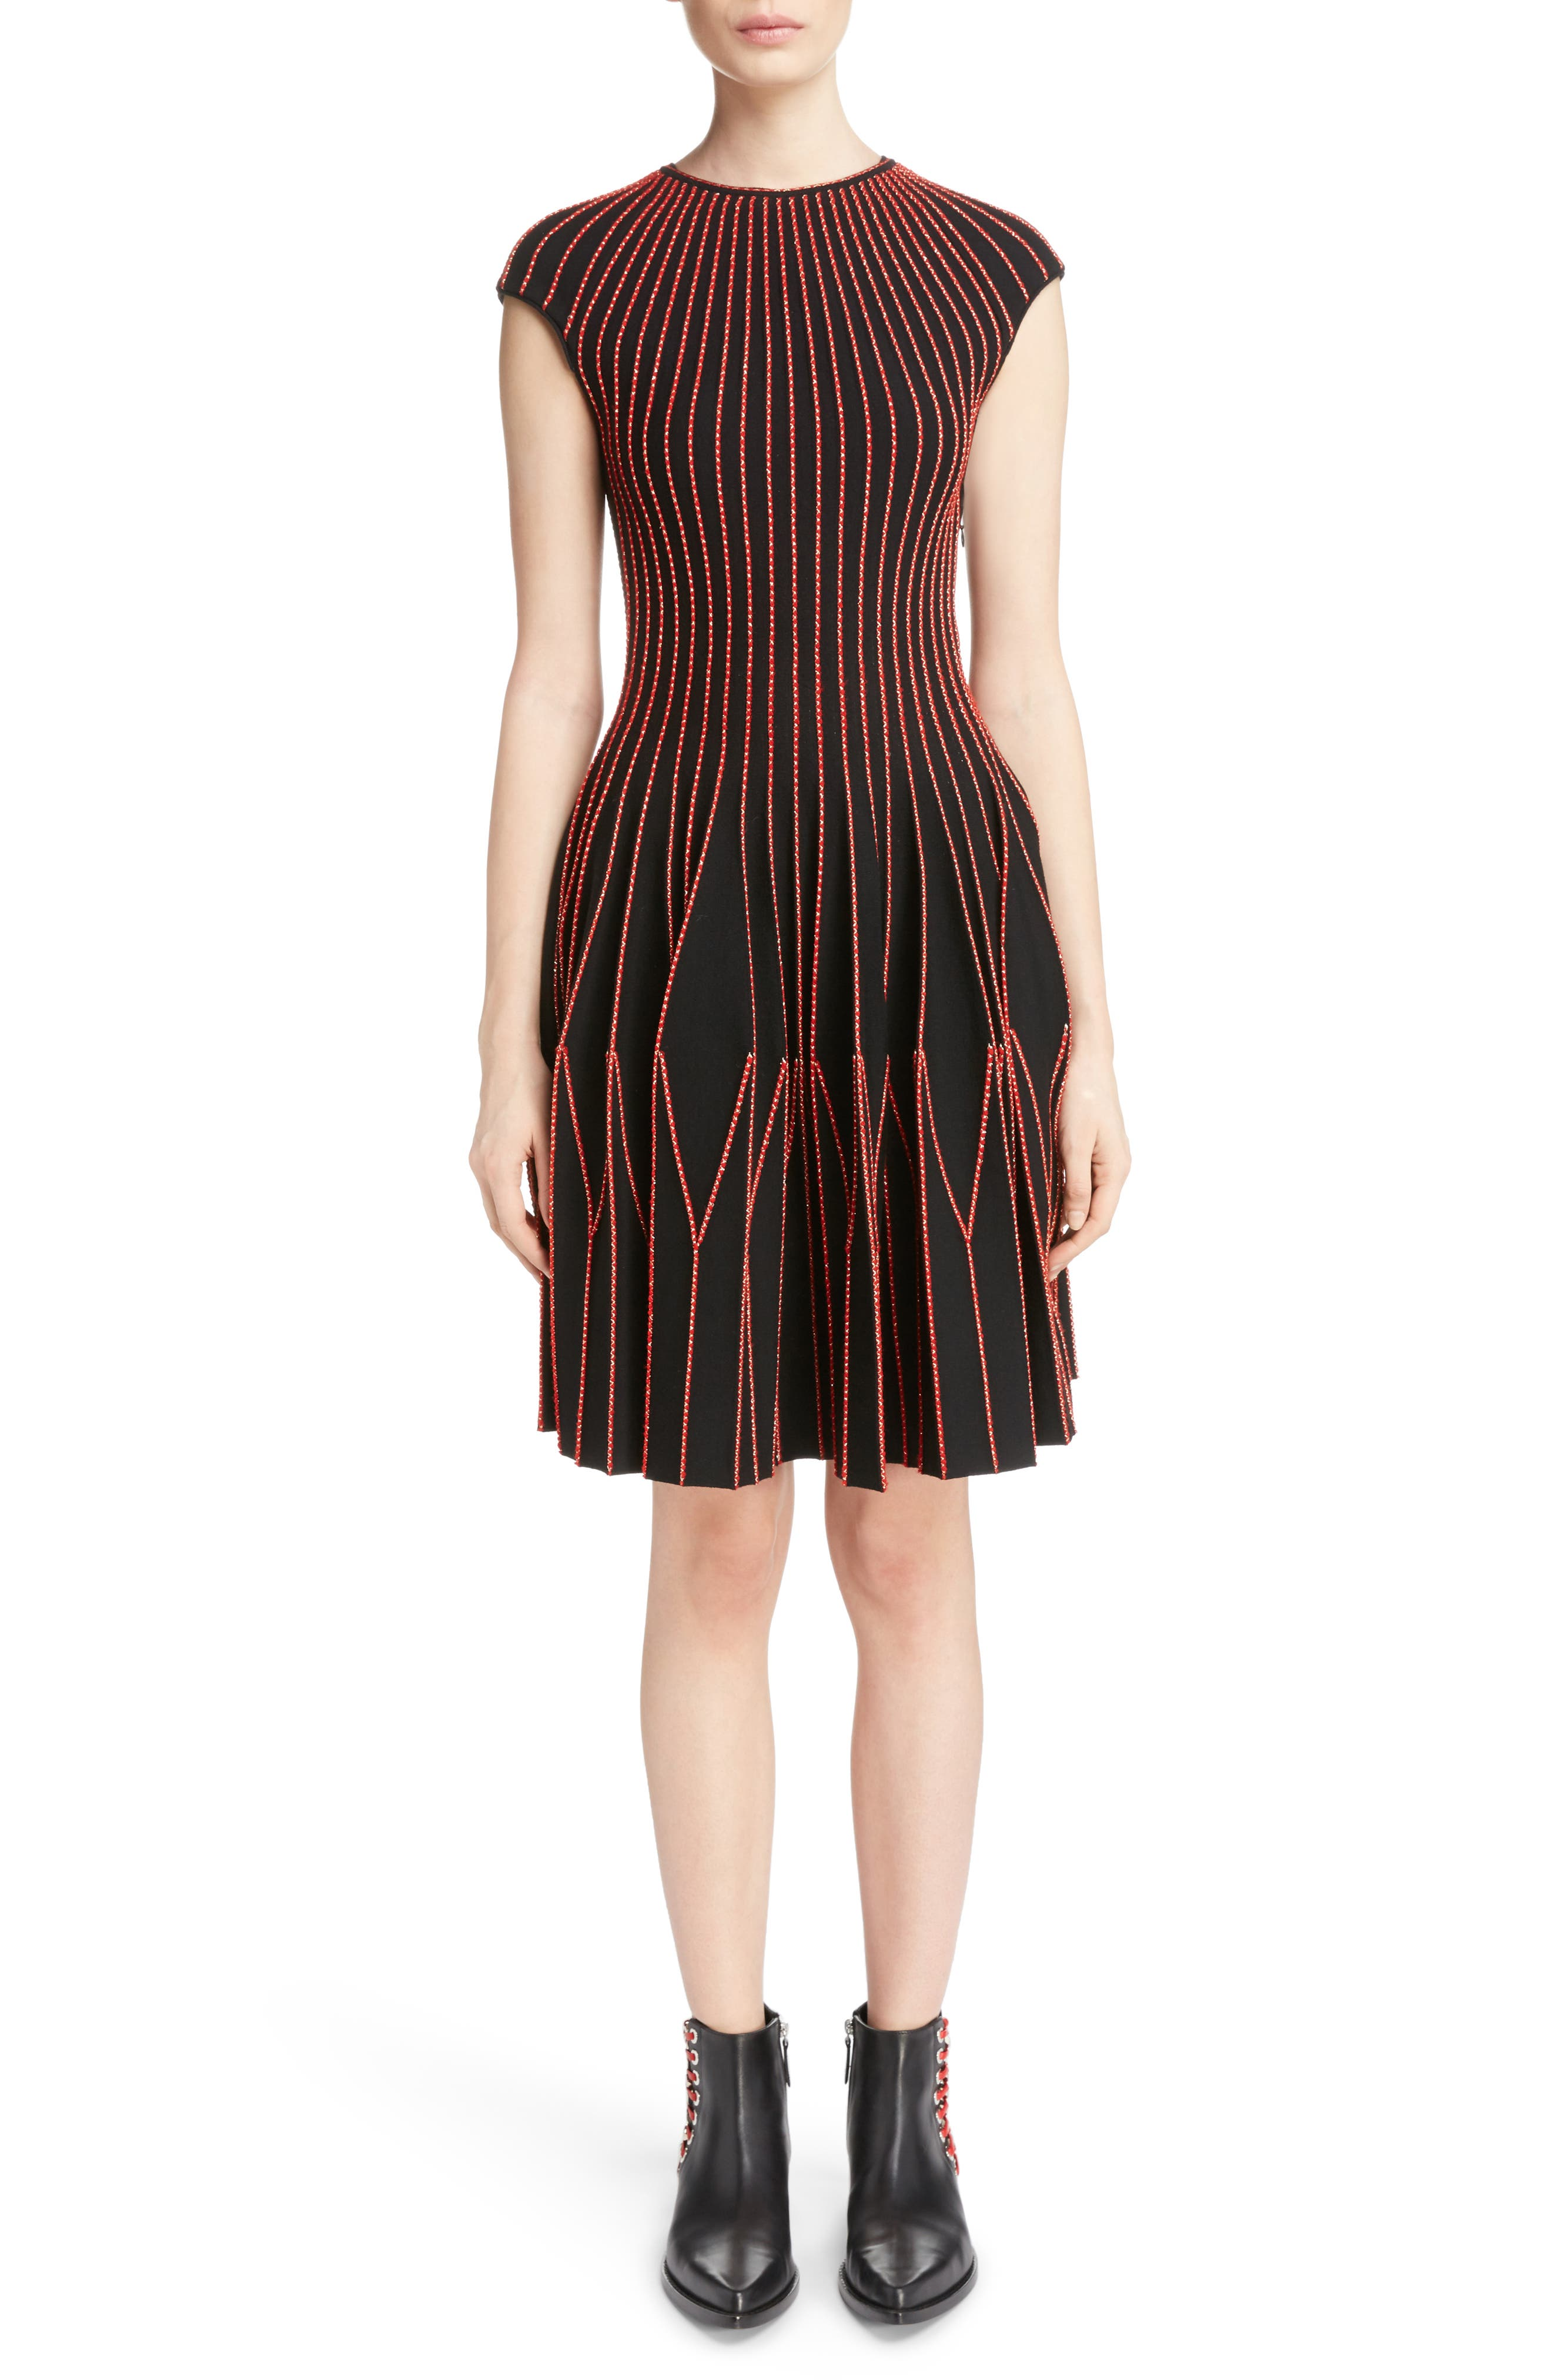 Alternate Image 1 Selected - Alexander McQueen Metallic Wool Blend Pleat Dress